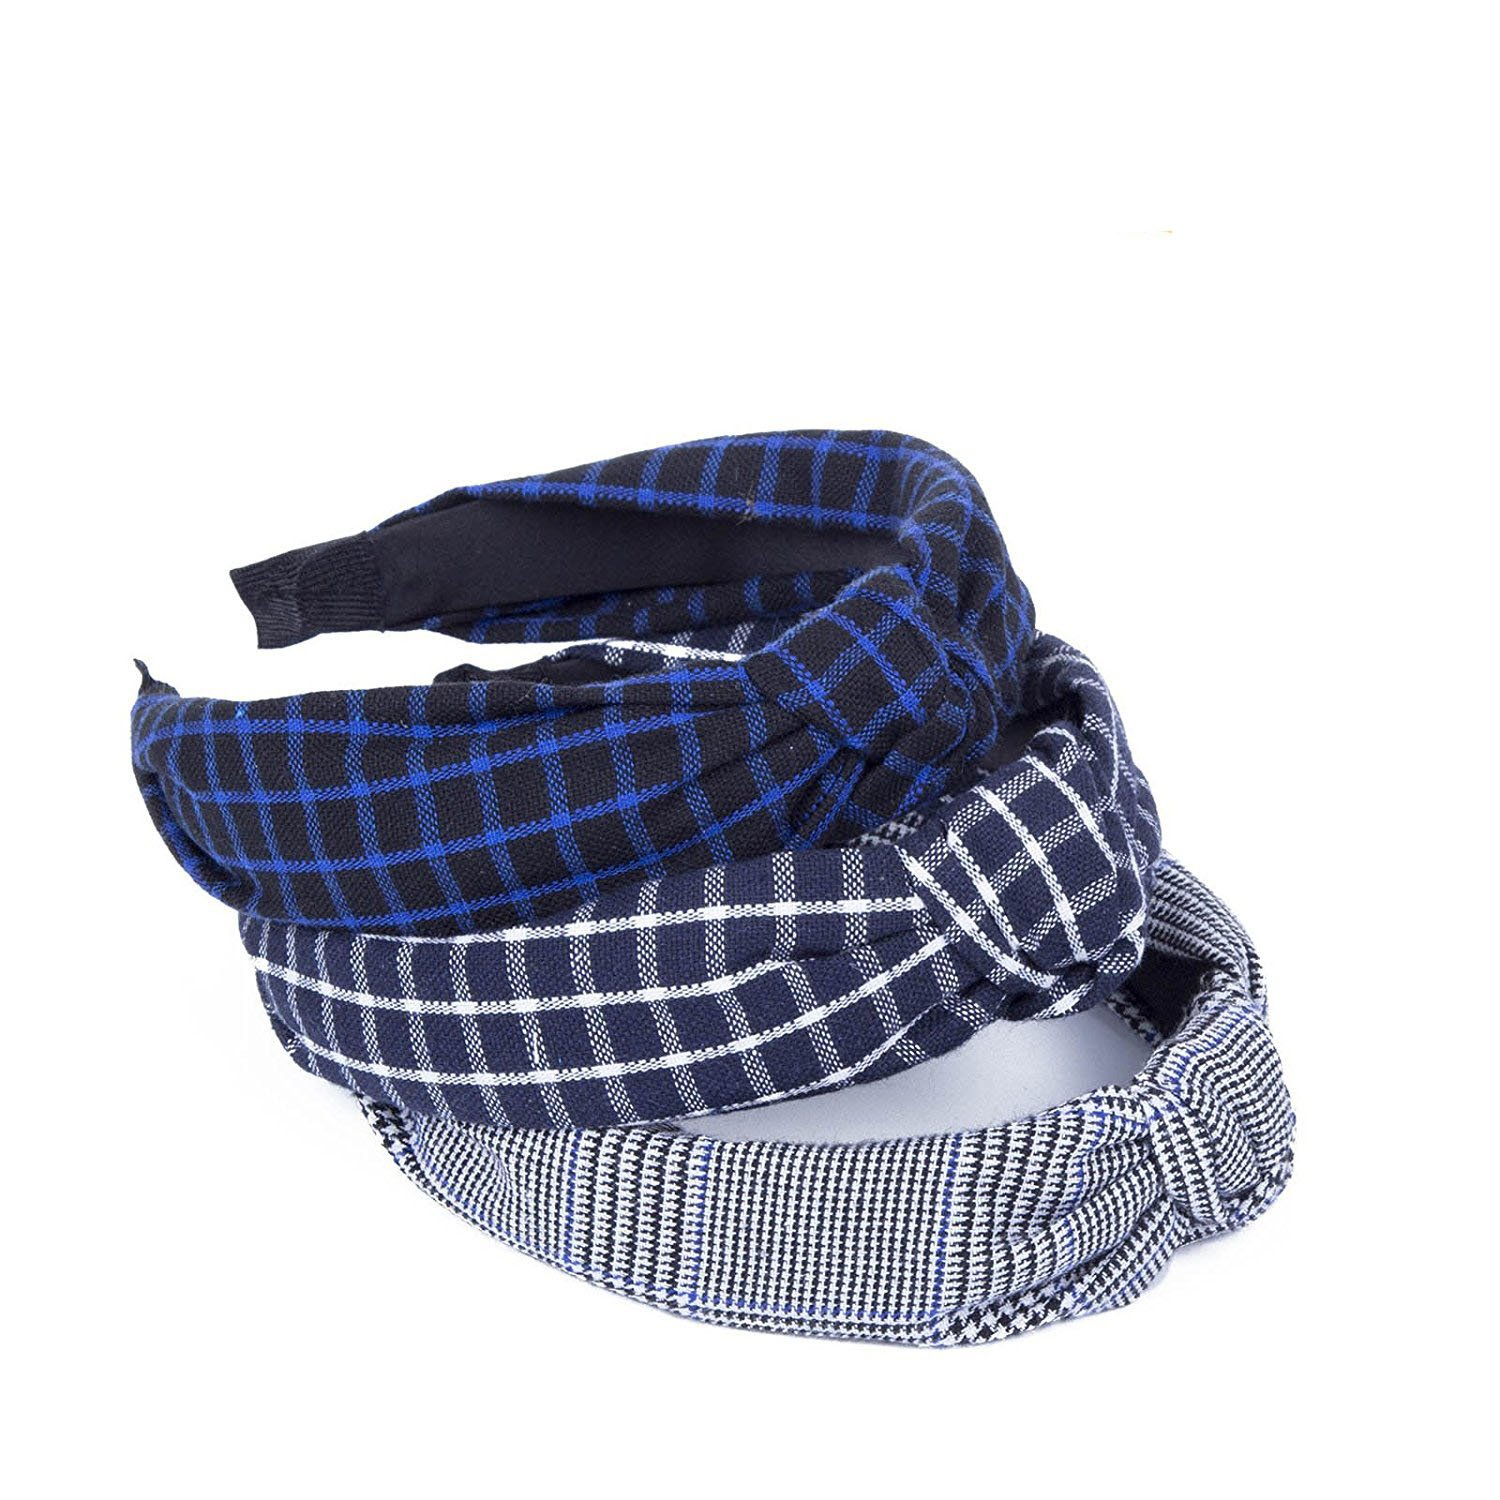 Turban Knotted Bow Elastic Headband - 3Pcs Women Hair Clip Plaid Hairwrap AWAYTR